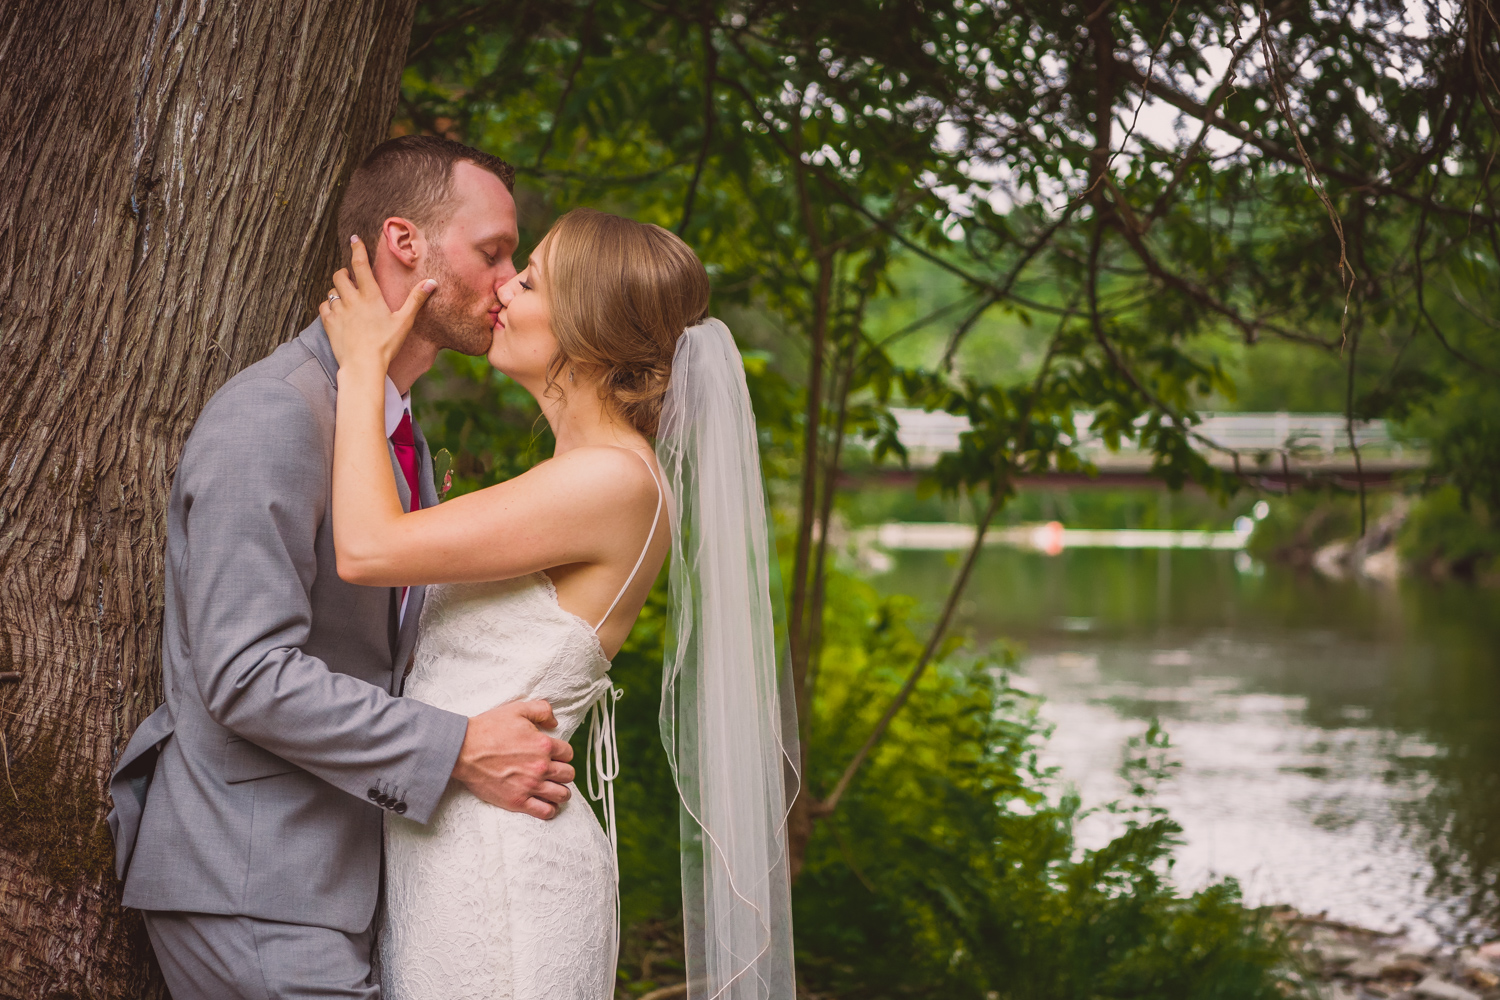 A quiet kiss and a peaceful start to a new life between a bride and groom in a moment by the water.